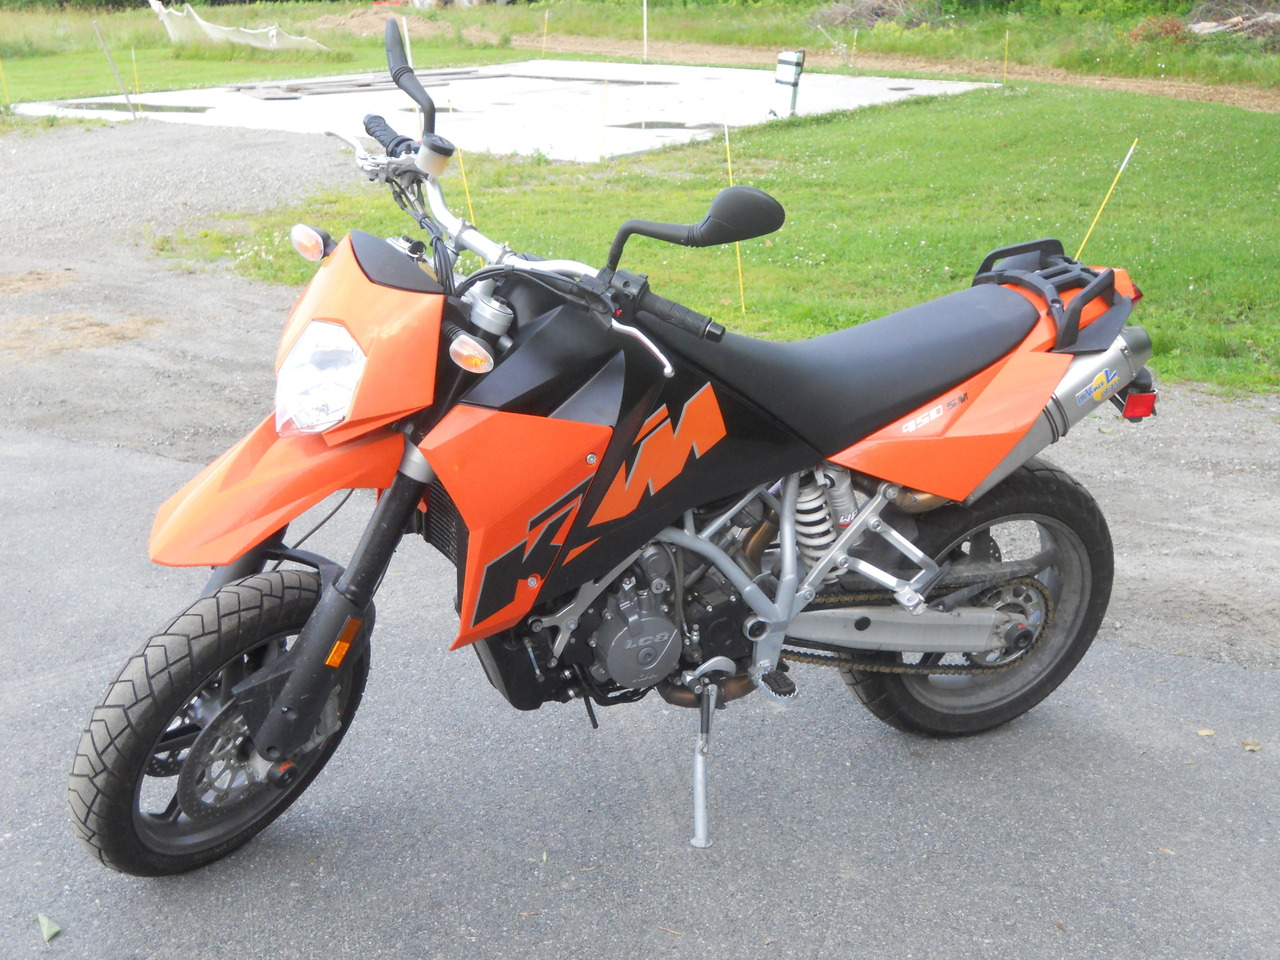 2006 KTM Supermoto 950, motorcycle listing